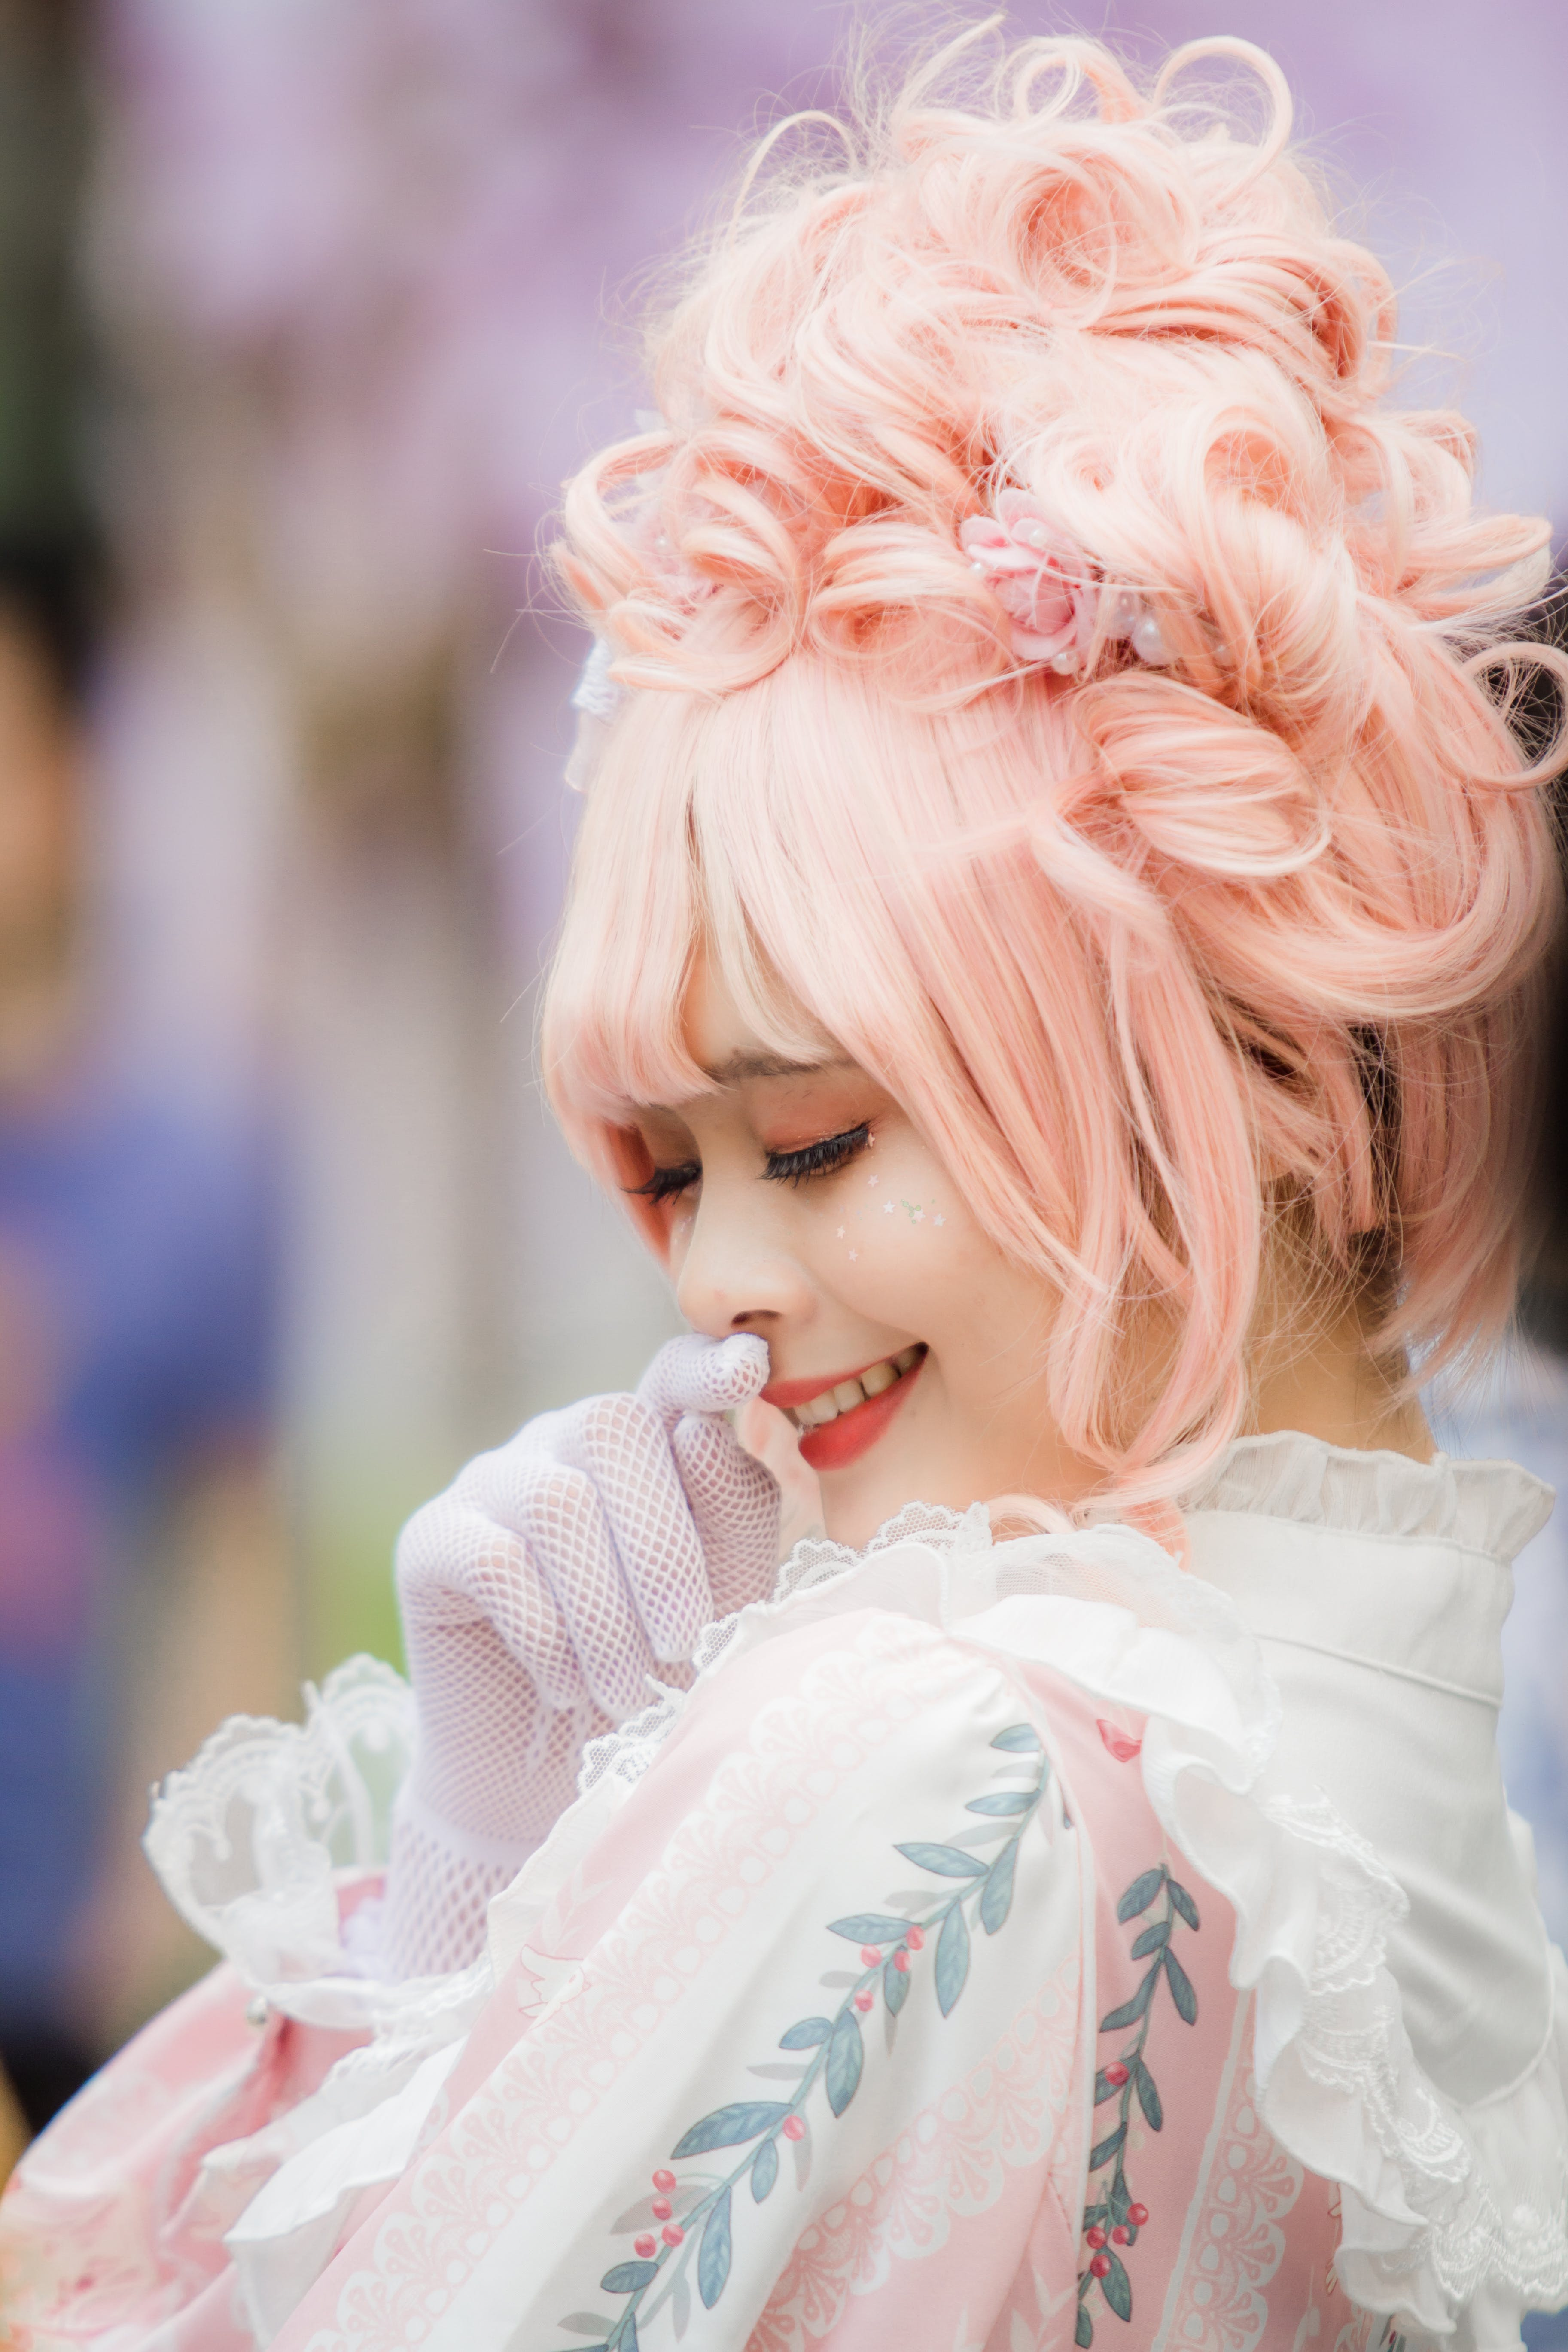 Close-Up Photo Of Woman With Pink Hair